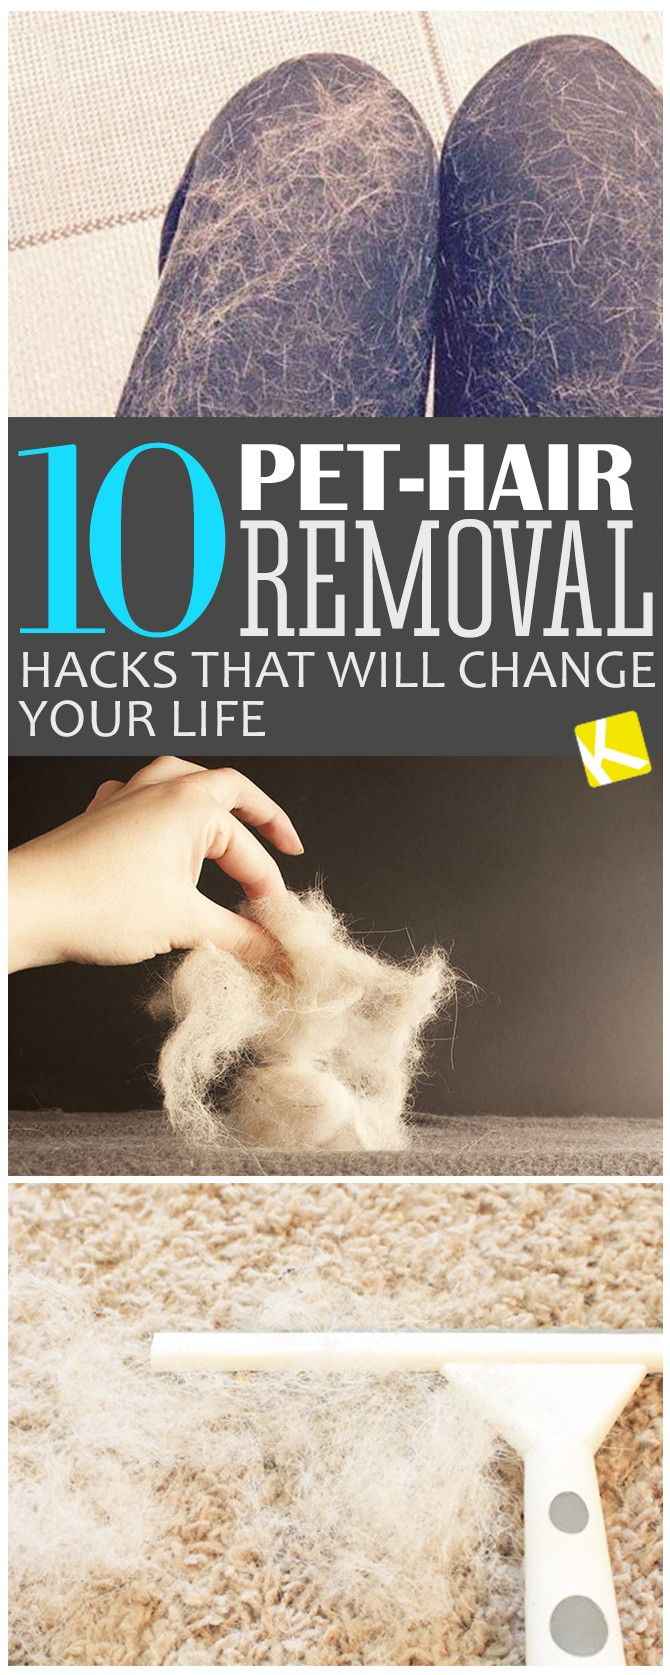 Discussion on this topic: 10 Injury Prevention Tips for Spring Cleaning, 10-injury-prevention-tips-for-spring-cleaning/